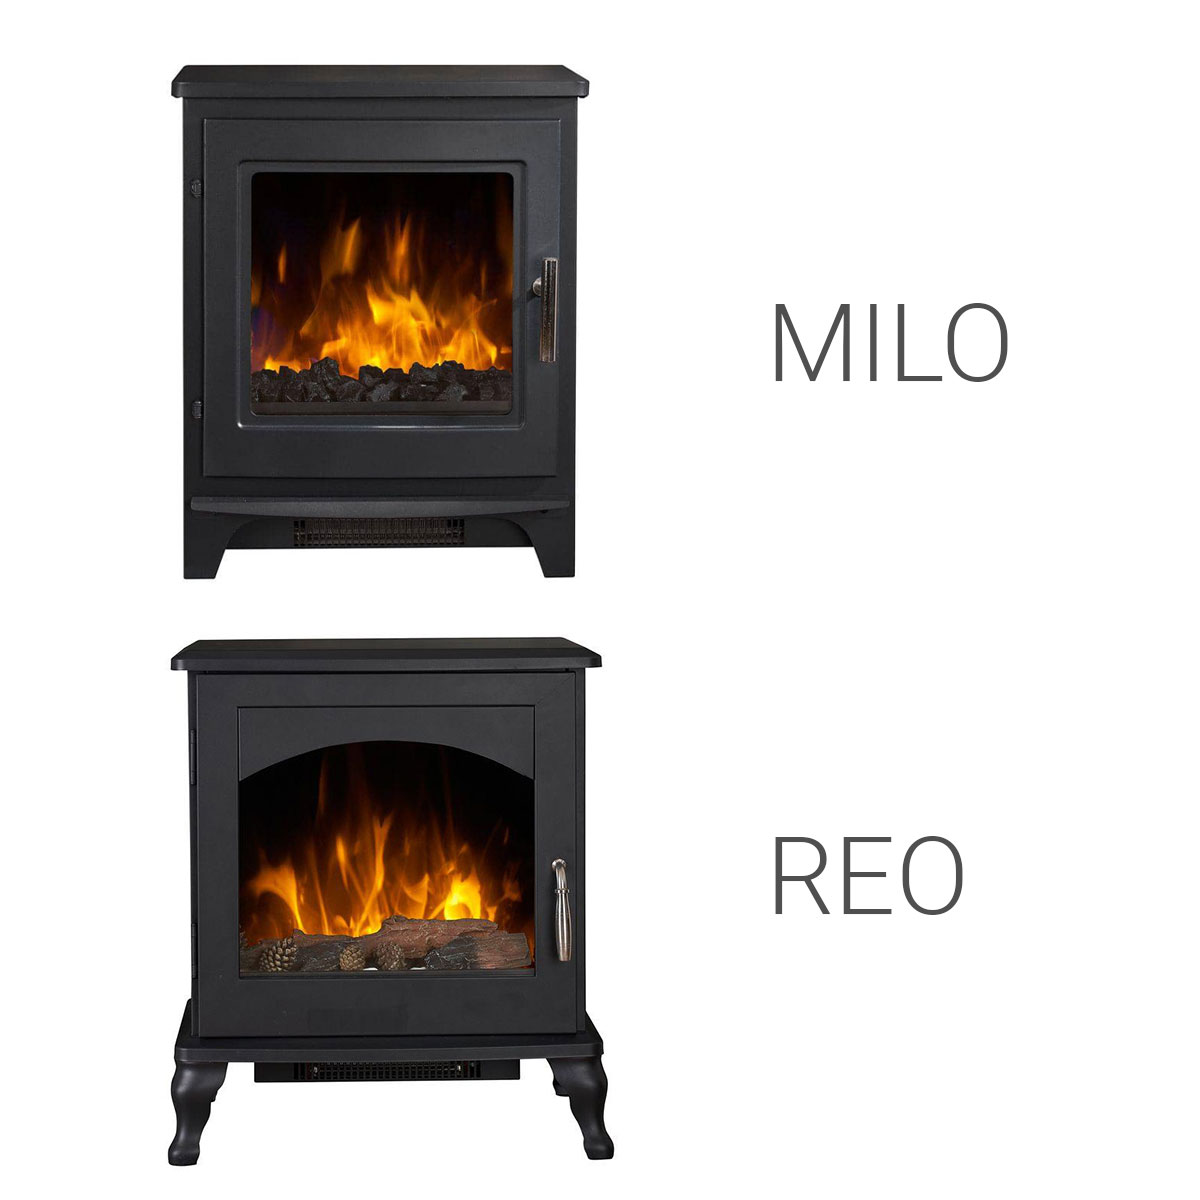 OER Milo and Reo Stoves